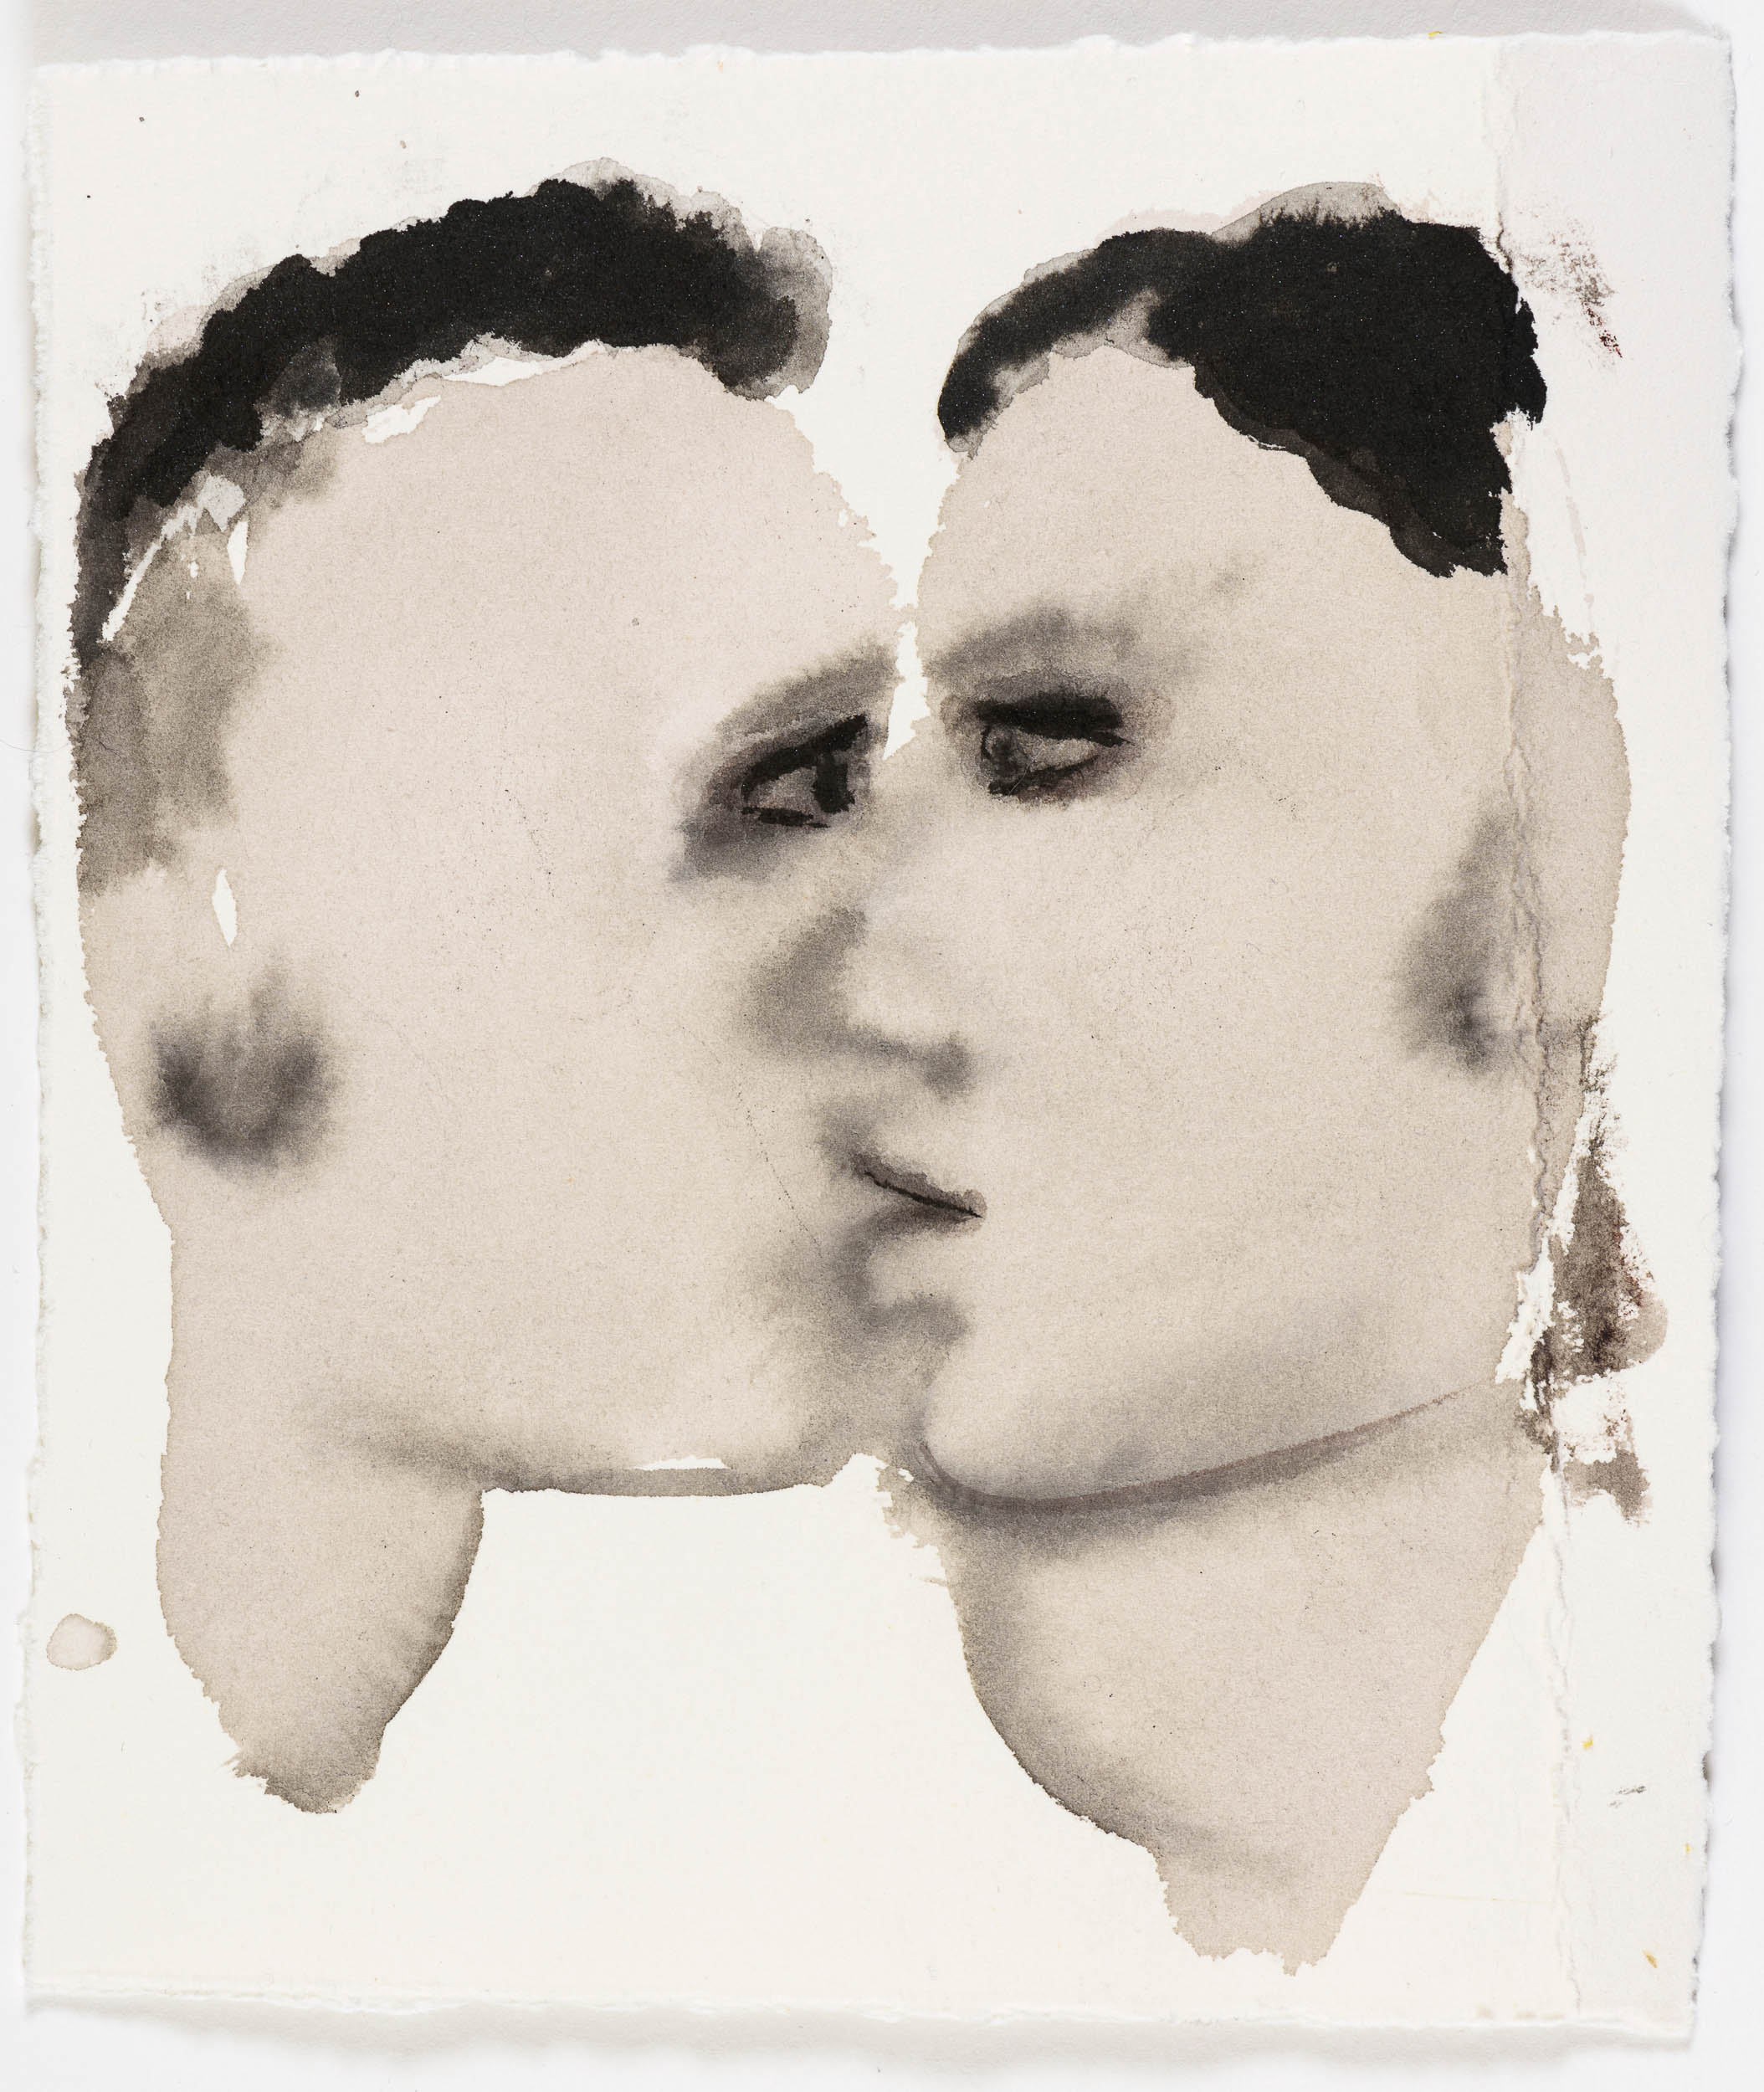 A LOVE STORY  Marlene Dumas,  A Lovestory , 2015-16. Ink wash and metallic acrylic on paper. 21.5 x 17.5 cm. Courtesy of the artist and David Zwirner.  © Marlene Dumas. Photo © Peter Cox.